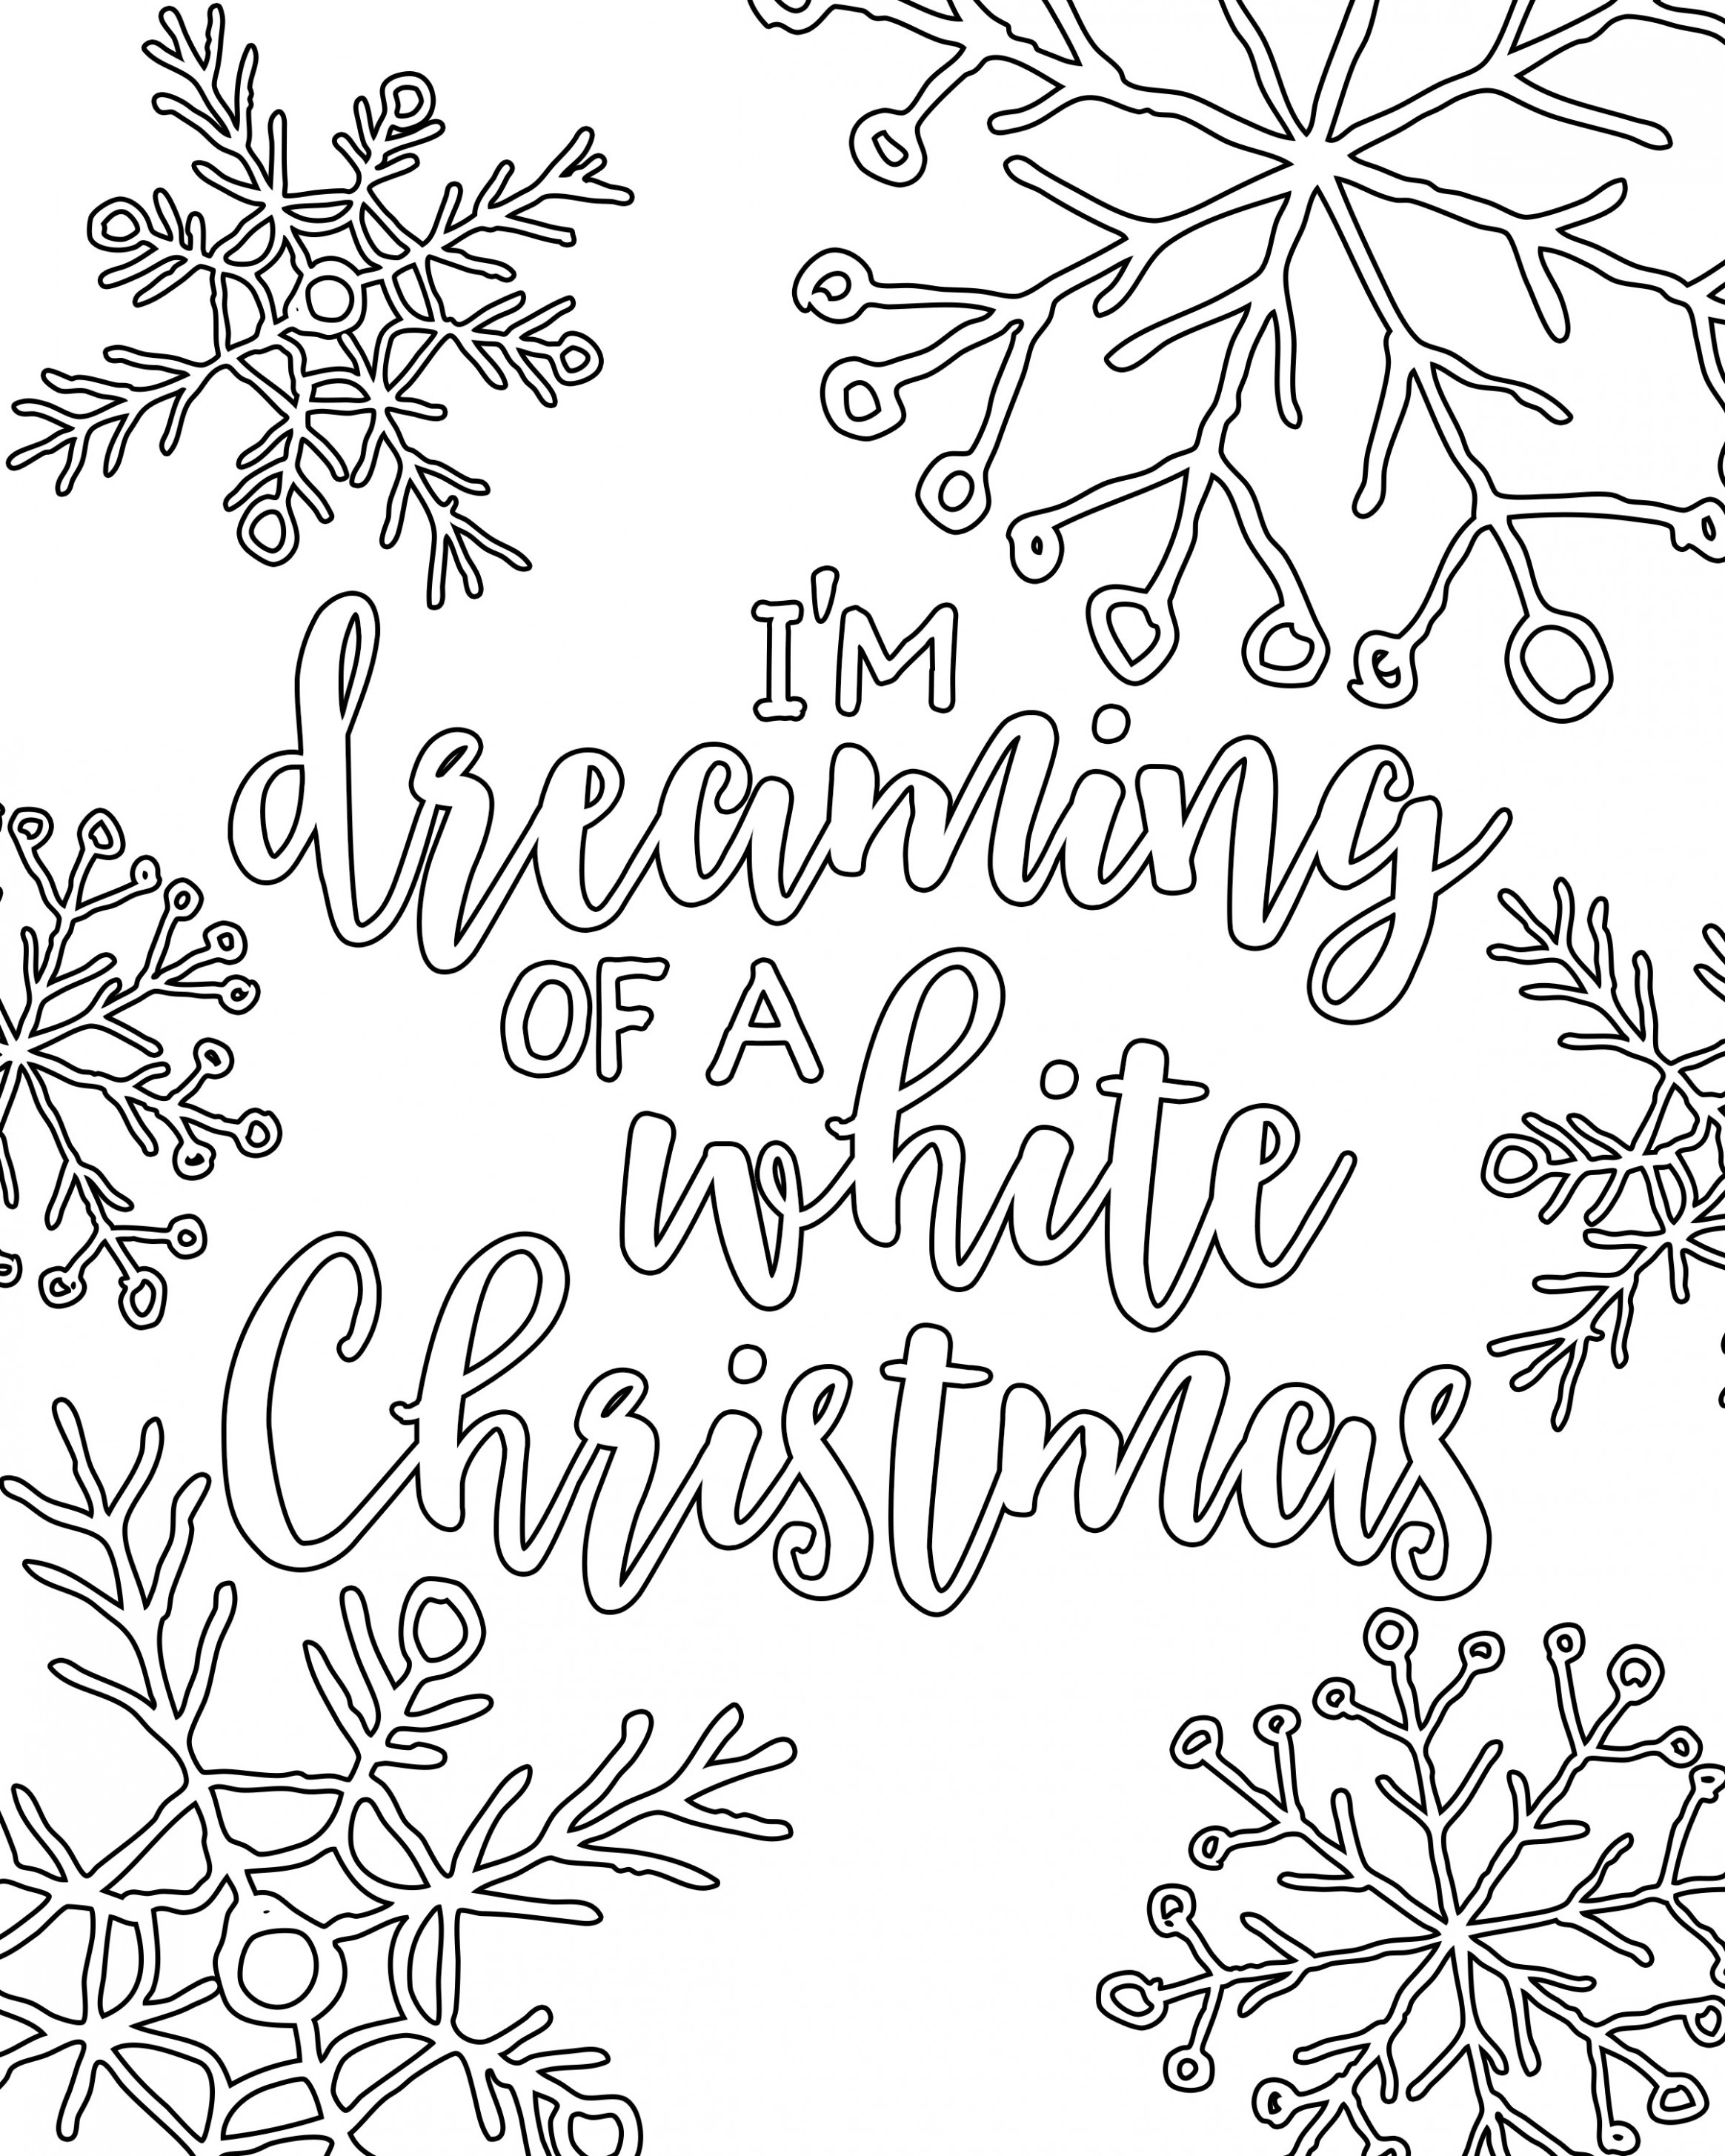 Free Printable White Christmas Adult Coloring Pages | Coloring Pages – Christmas Coloring Pages That Are Printable